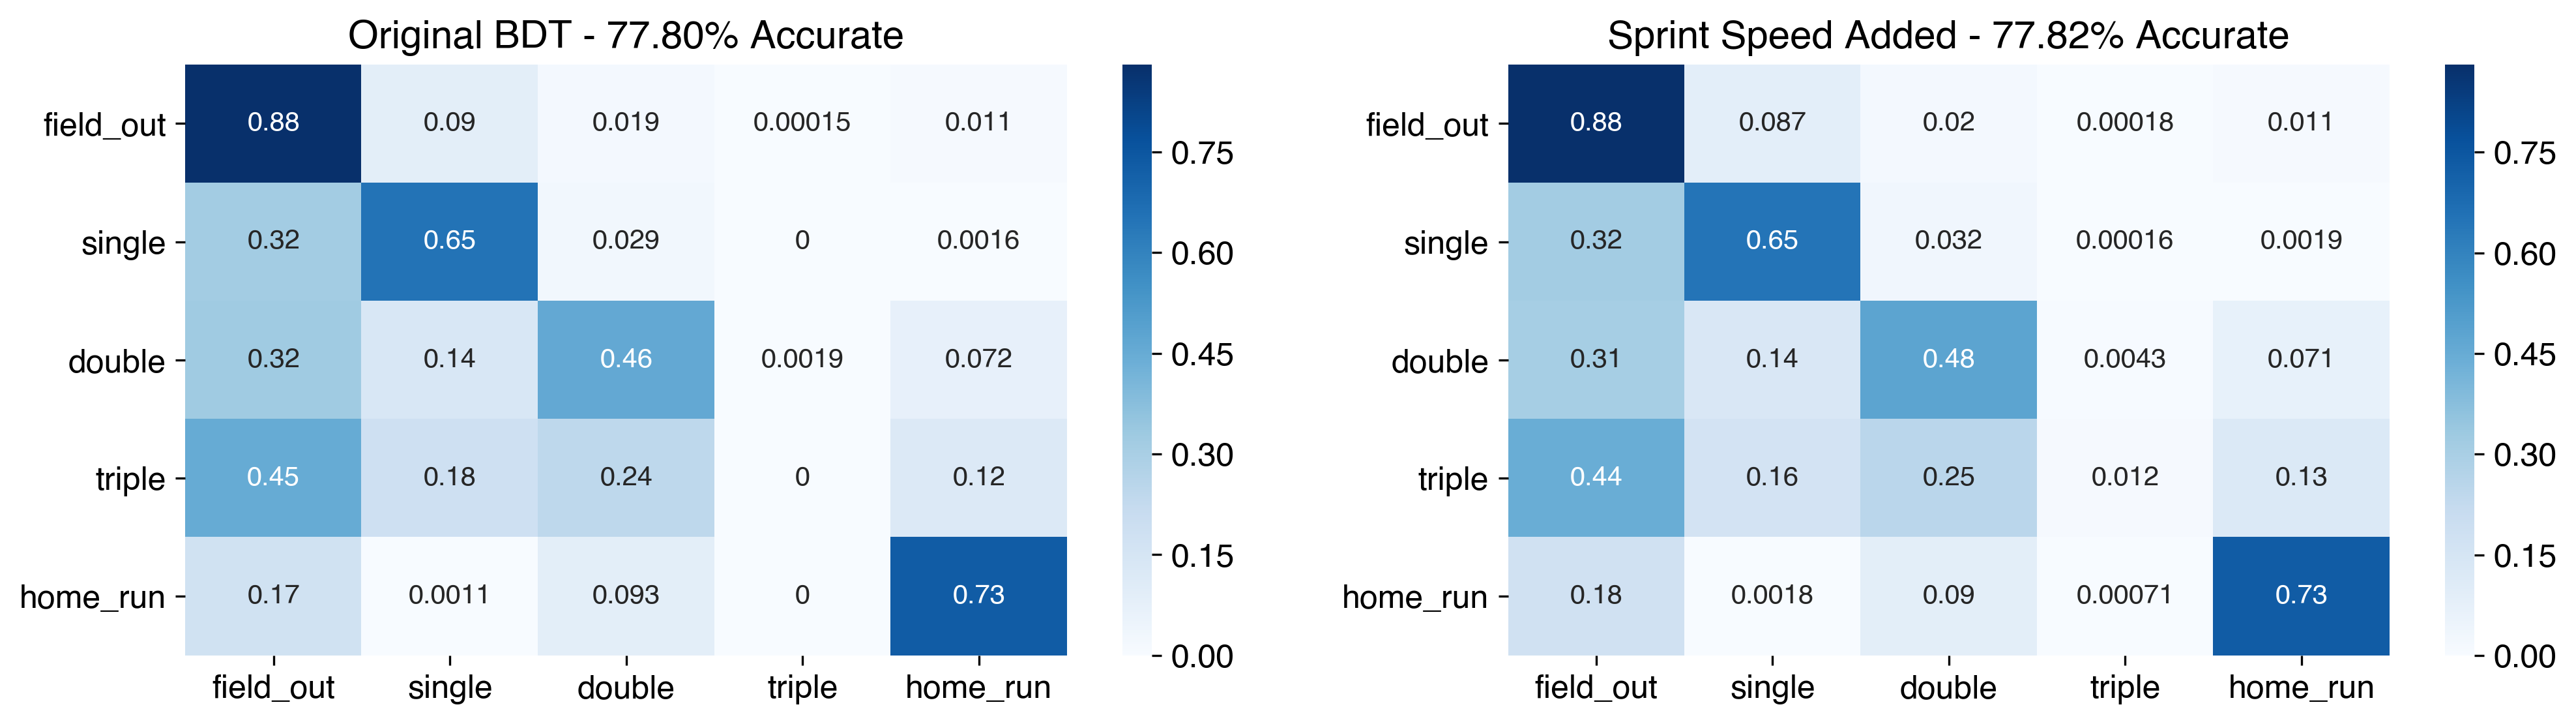 Confusion matrices comparing the original BDT to one with sprint speed added